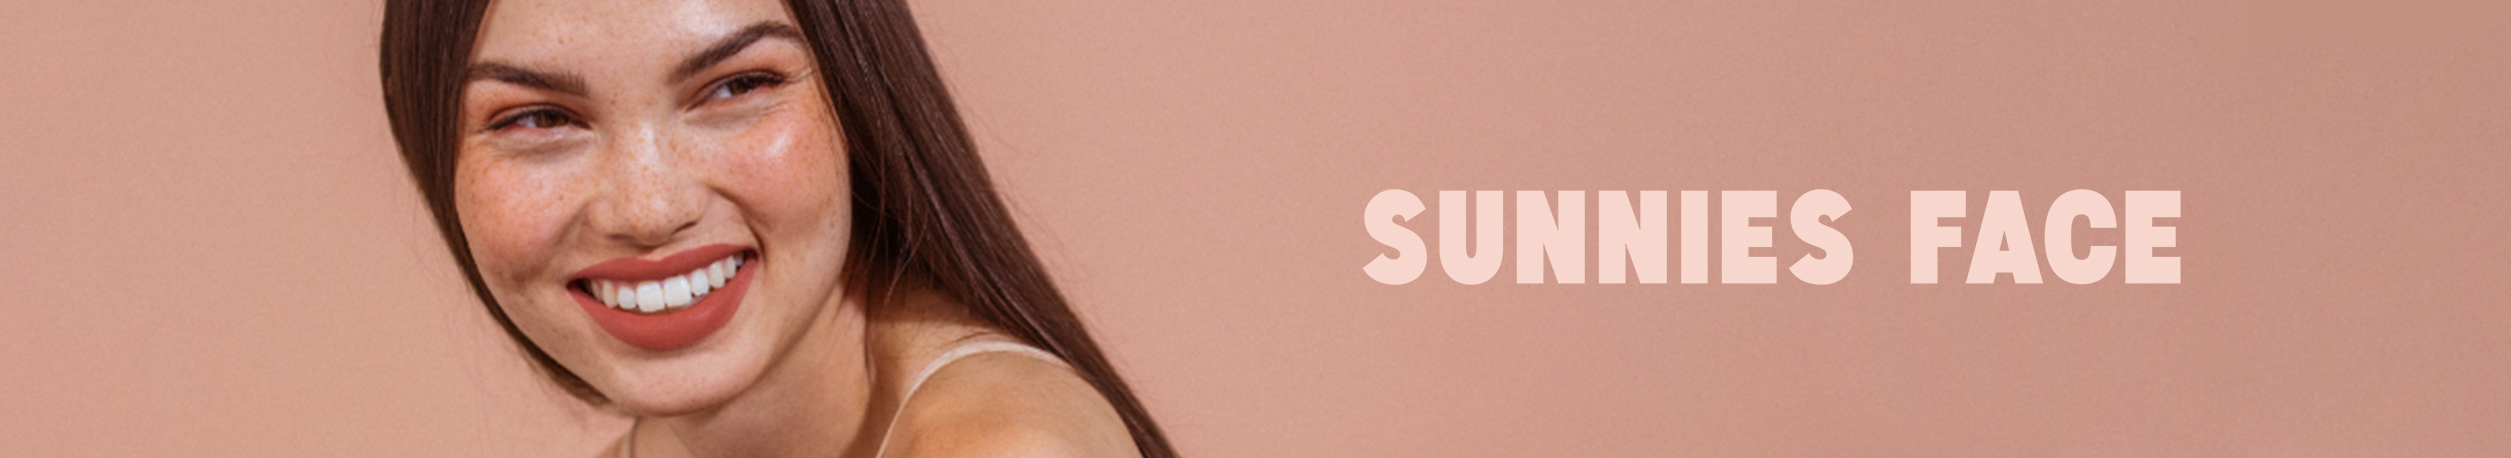 Sunnies face desktop banner